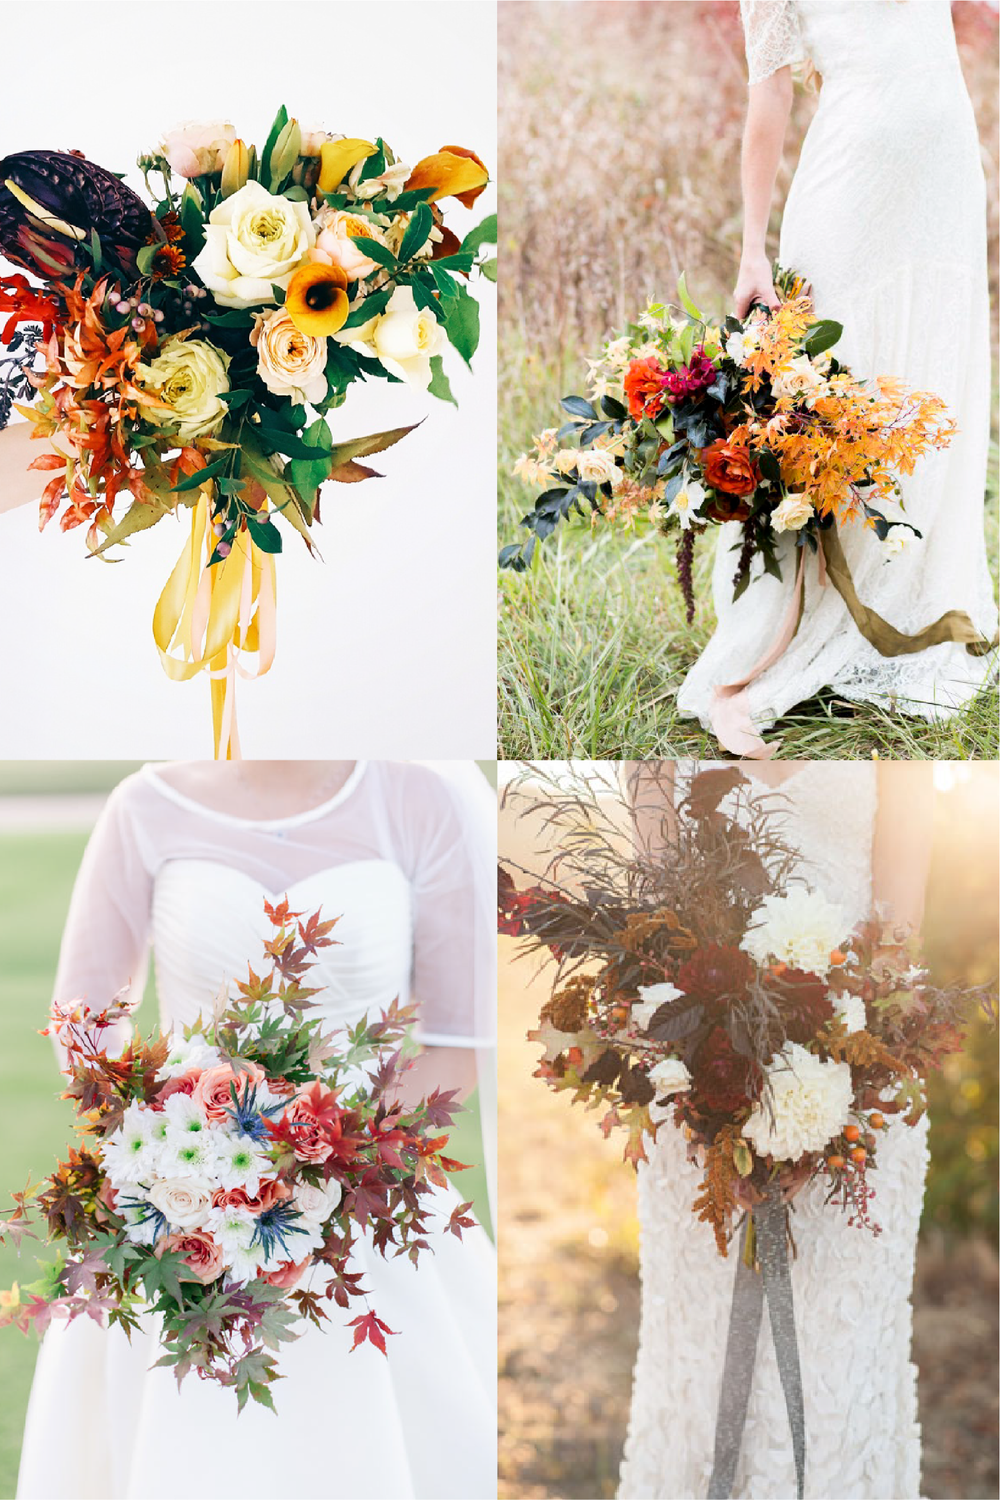 FROM CLOCKWISE, FROM TOP LEFT:  FLOWERS BY  LIME TREE BOWER  ;   PHOTO BY  REVERIE SUPPLY ; FLOWERS BY   AMANDA O'SHANNESSY CREATIVE  AND PHOTO BY  MELANIE DUERKOPP ; FLOWERS BY SUSDAN DIPPER (FAMILY FRIEND OF COUPLE) AND PHOTO BY   JEN + ASHLEY PHOTOGRAPHY .